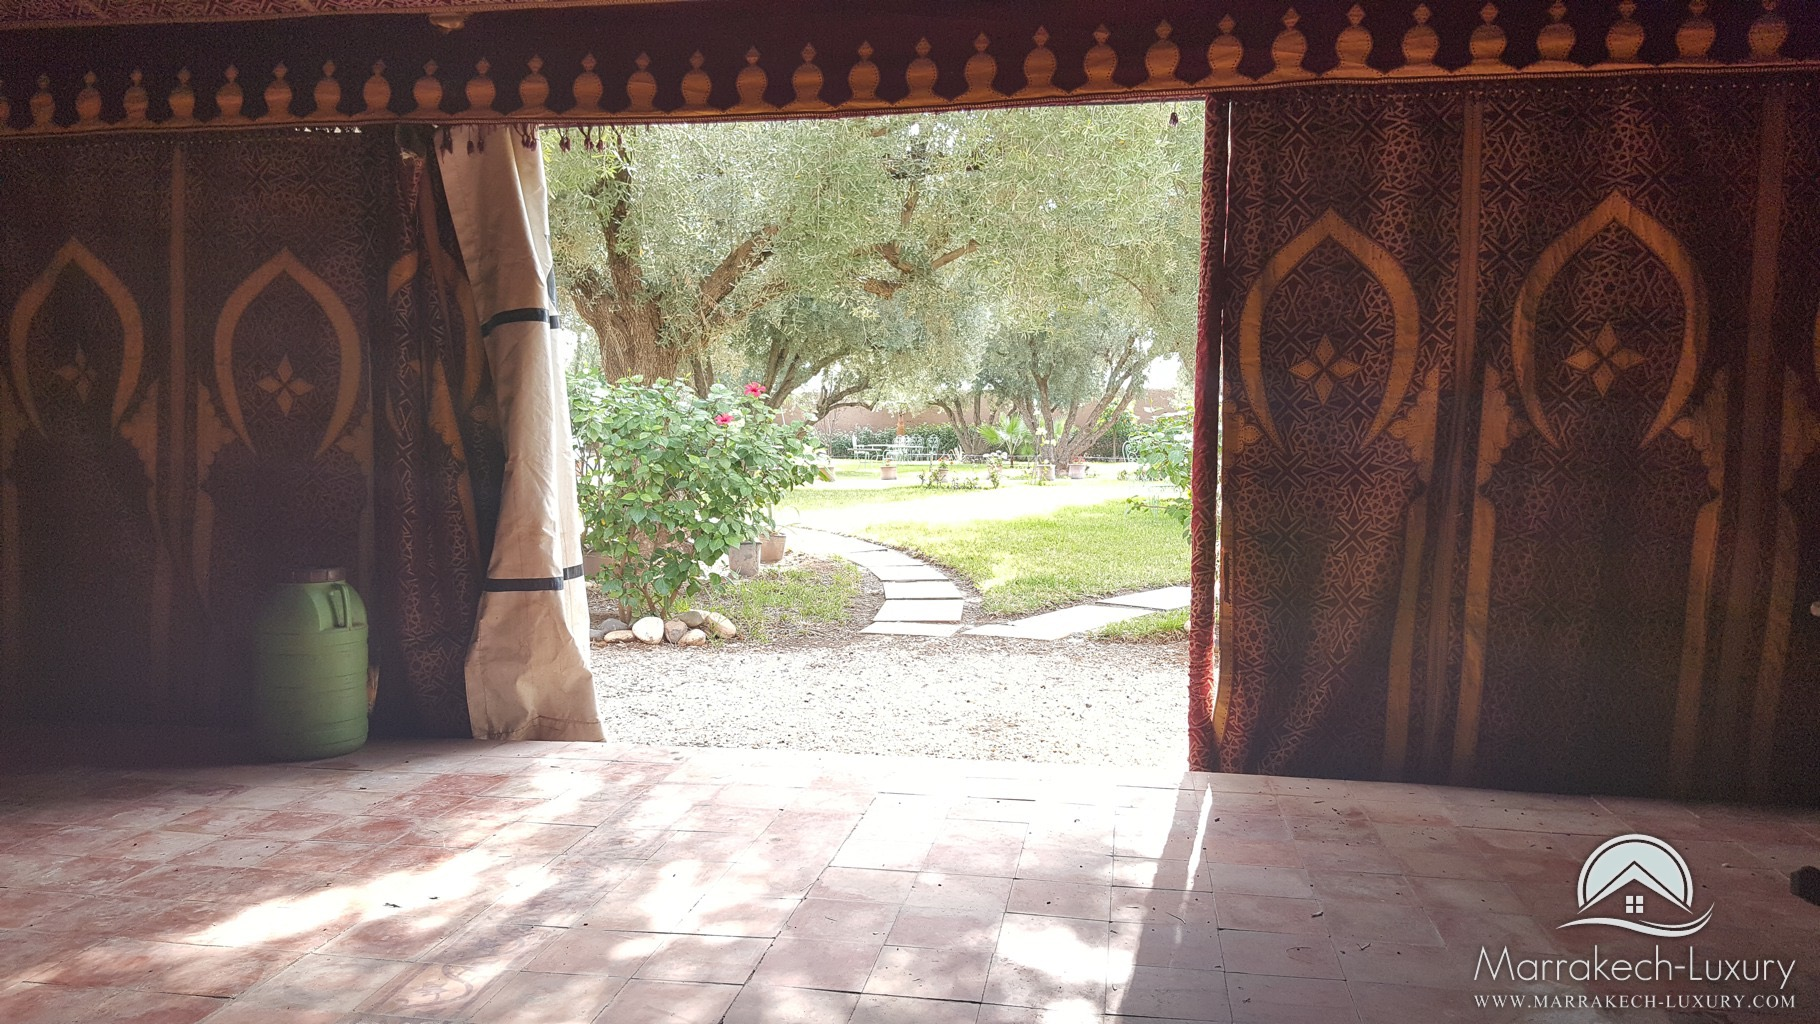 Vilavfes1013 45 agence immobili re marrakech acheter for Agence immobiliere 45